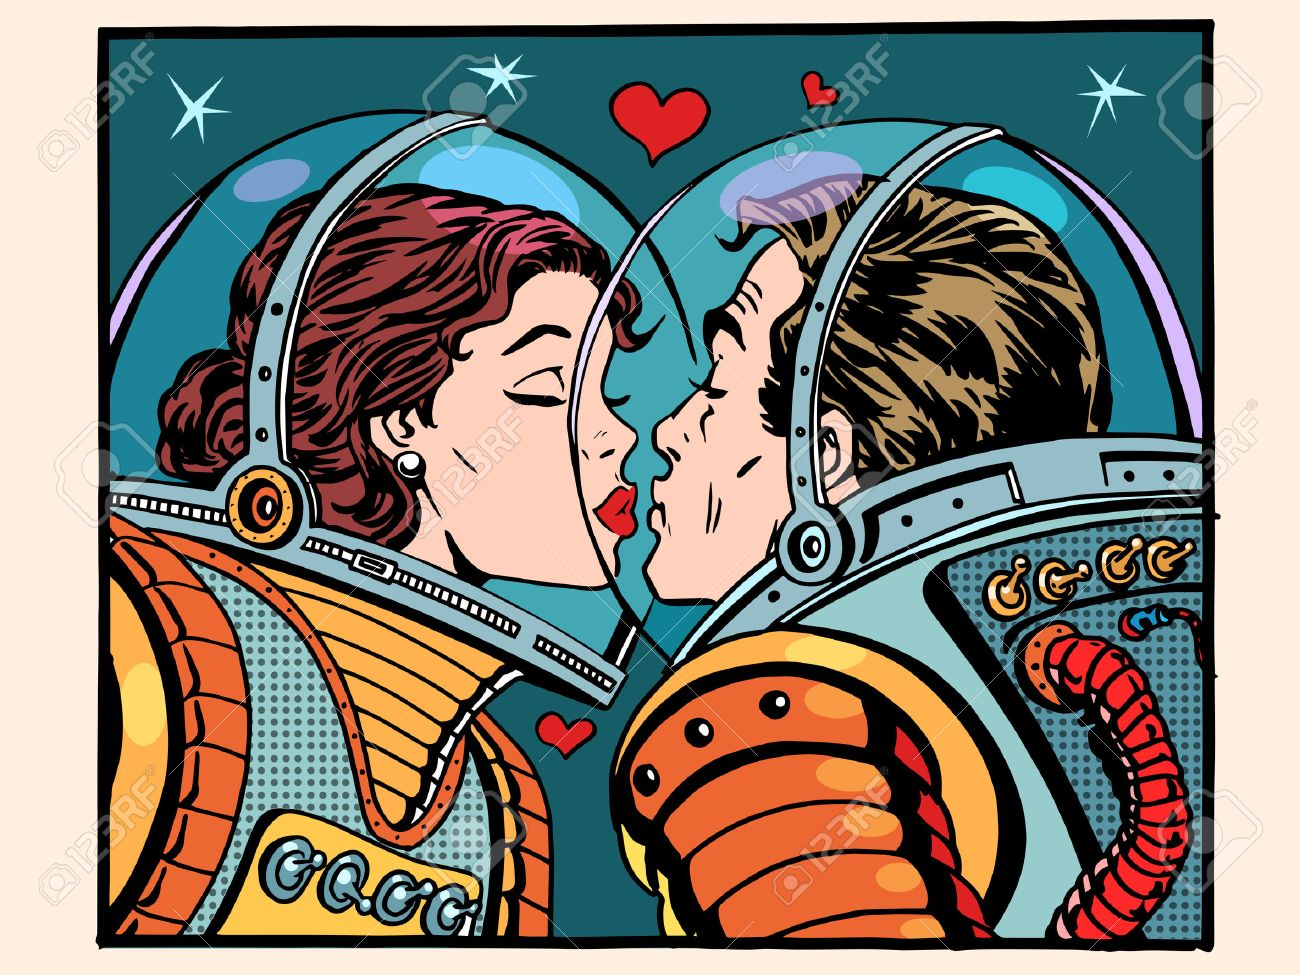 Kiss space man and woman astronauts pop art retro style. Valentines day, wedding and love. A girl and a boy. Science and the cosmos. - 50878480